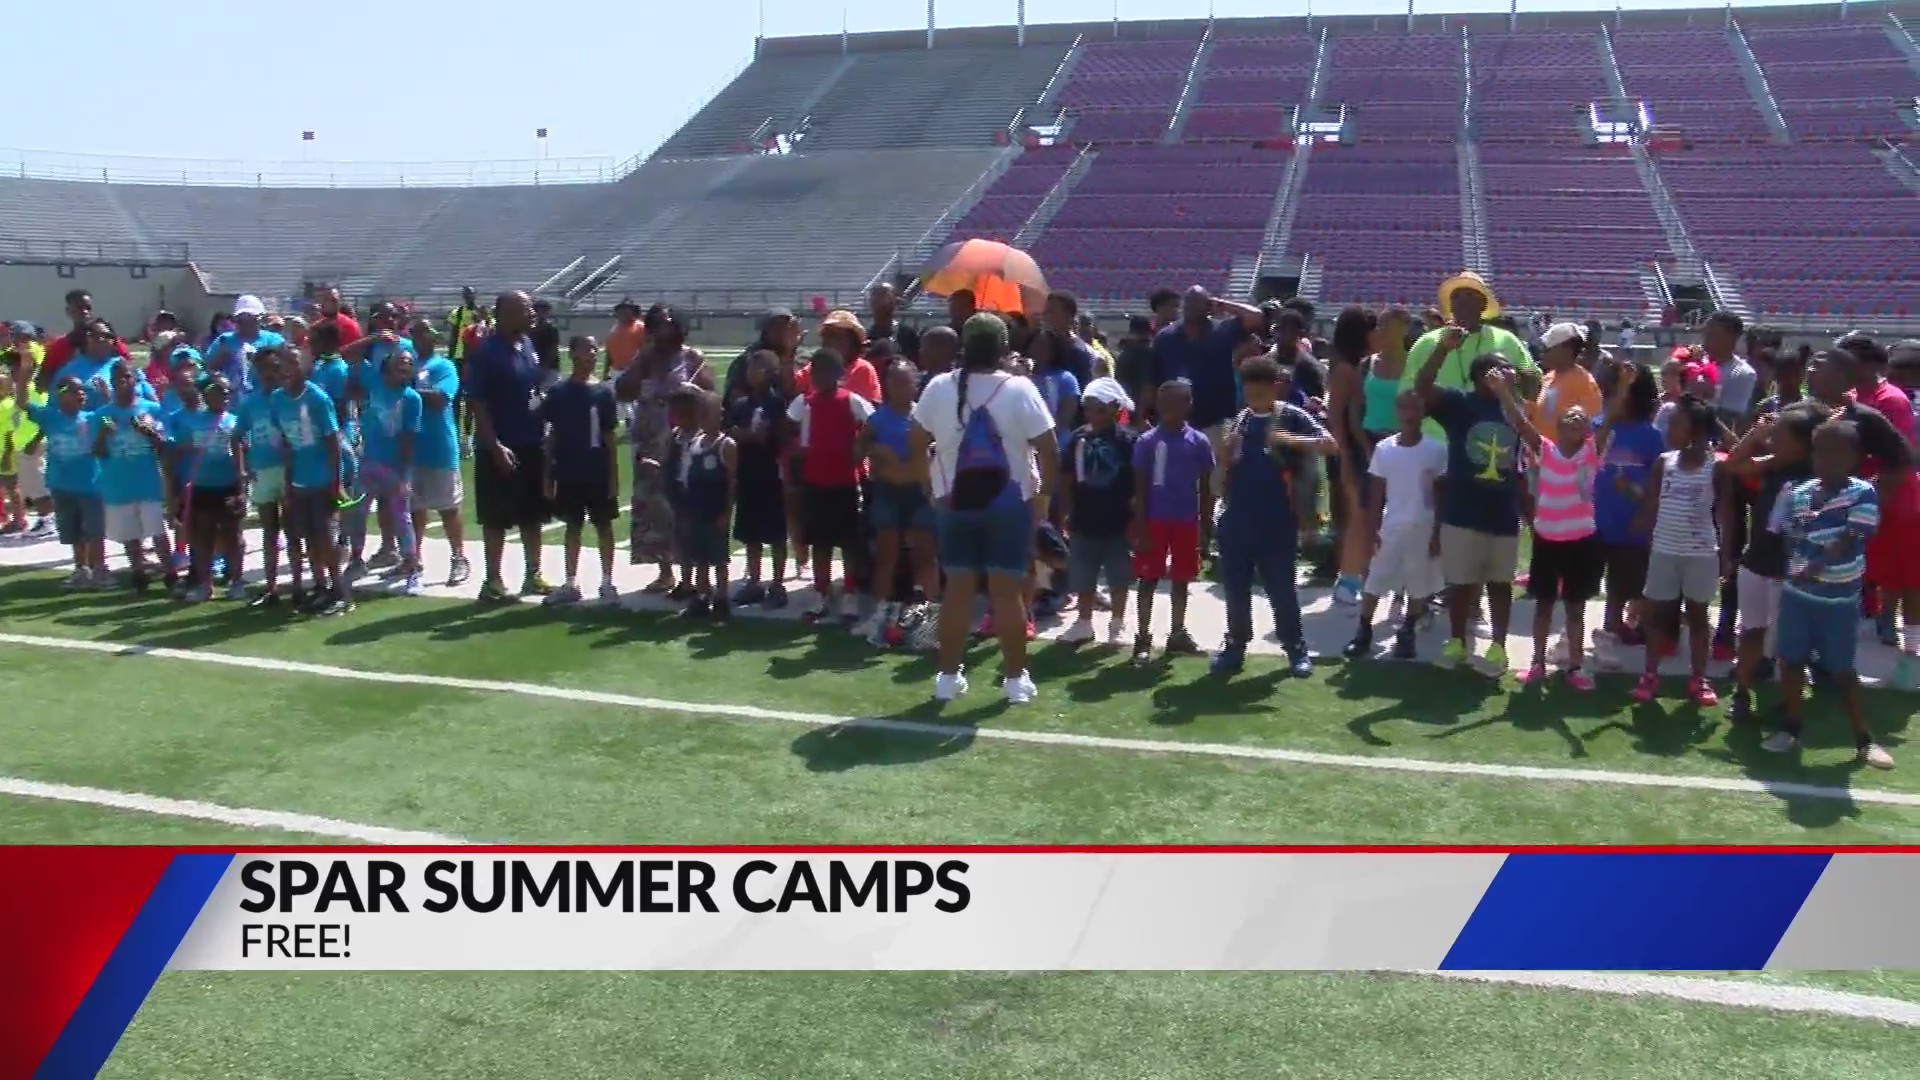 SPAR offering free, structured summer camps (Fox)